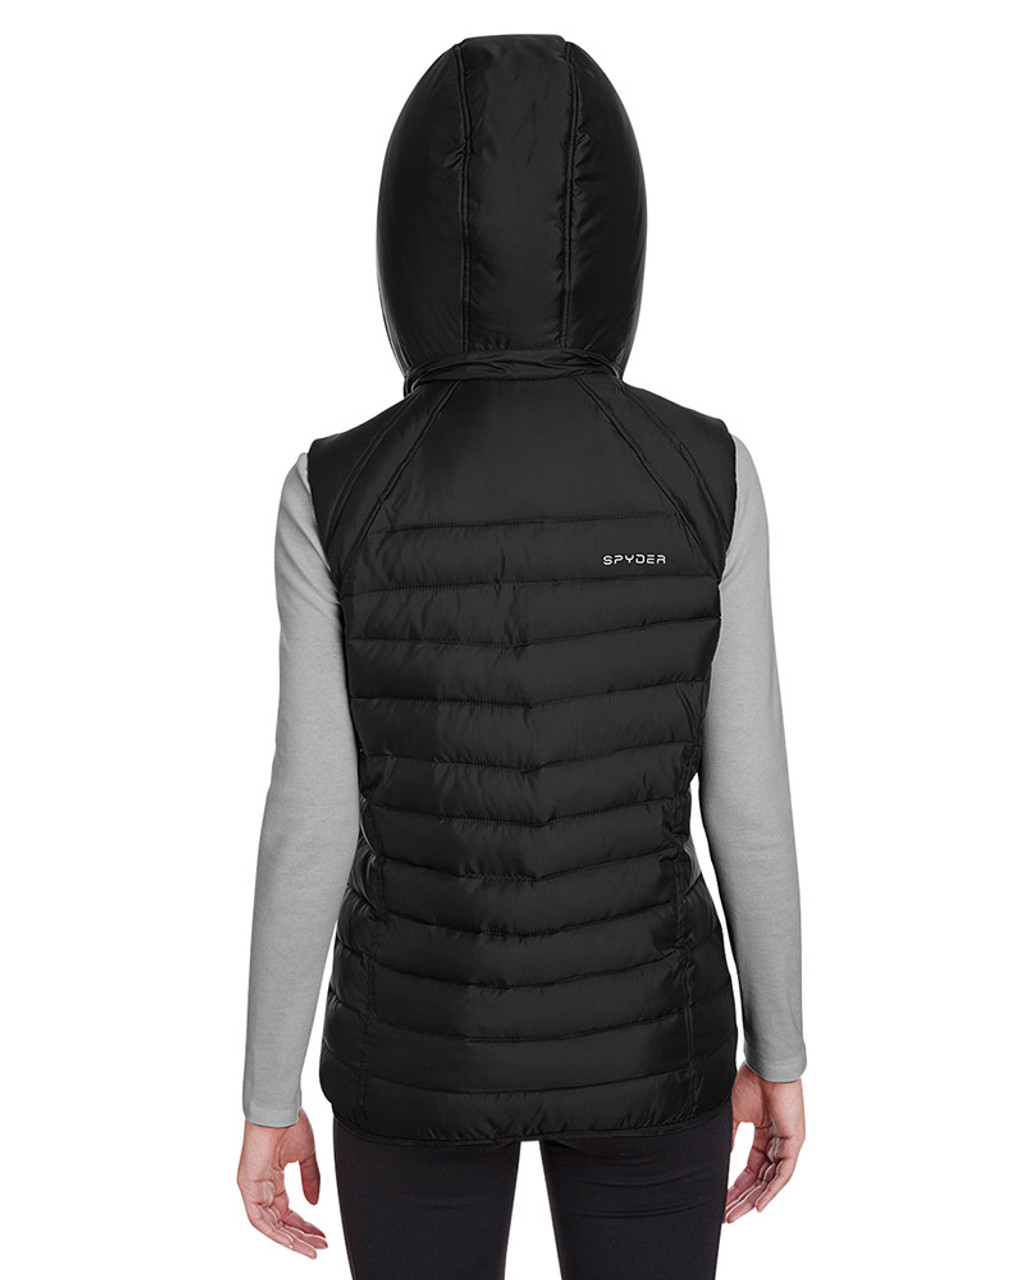 Black - back, S16641 Spyder Ladies' Supreme Puffer Vest | Blankclothing.ca